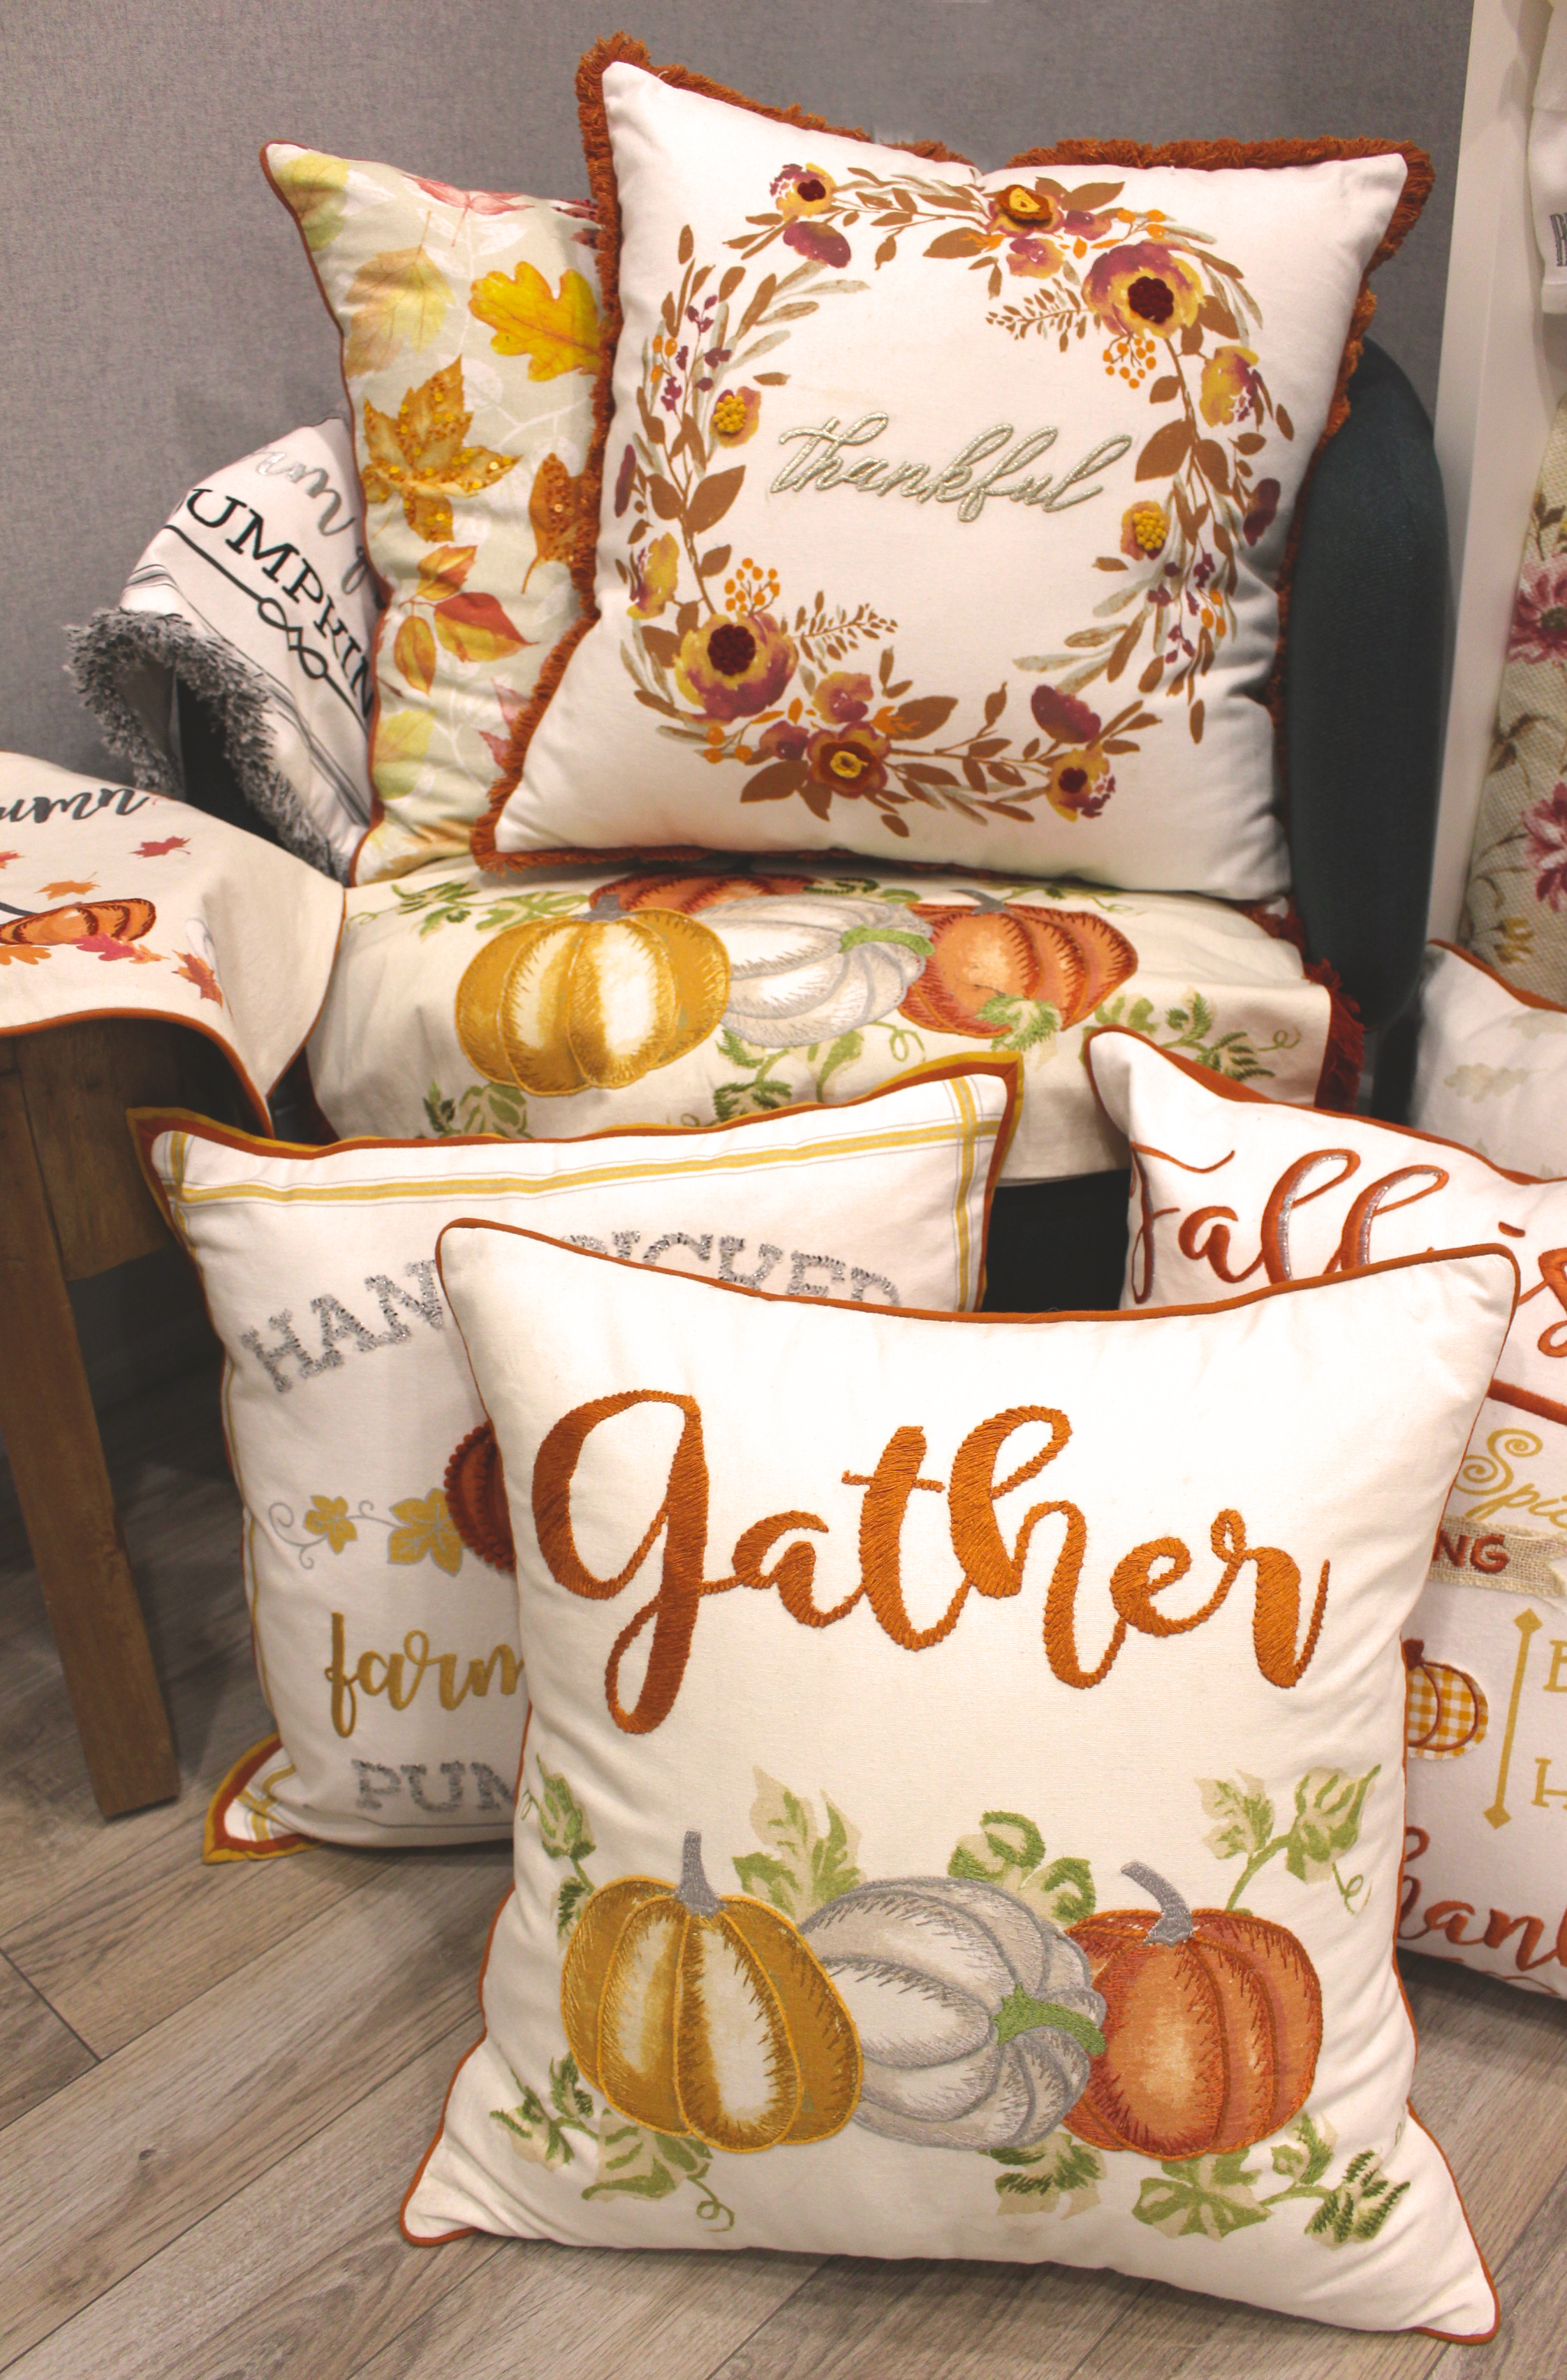 Harvest pillows.jpg